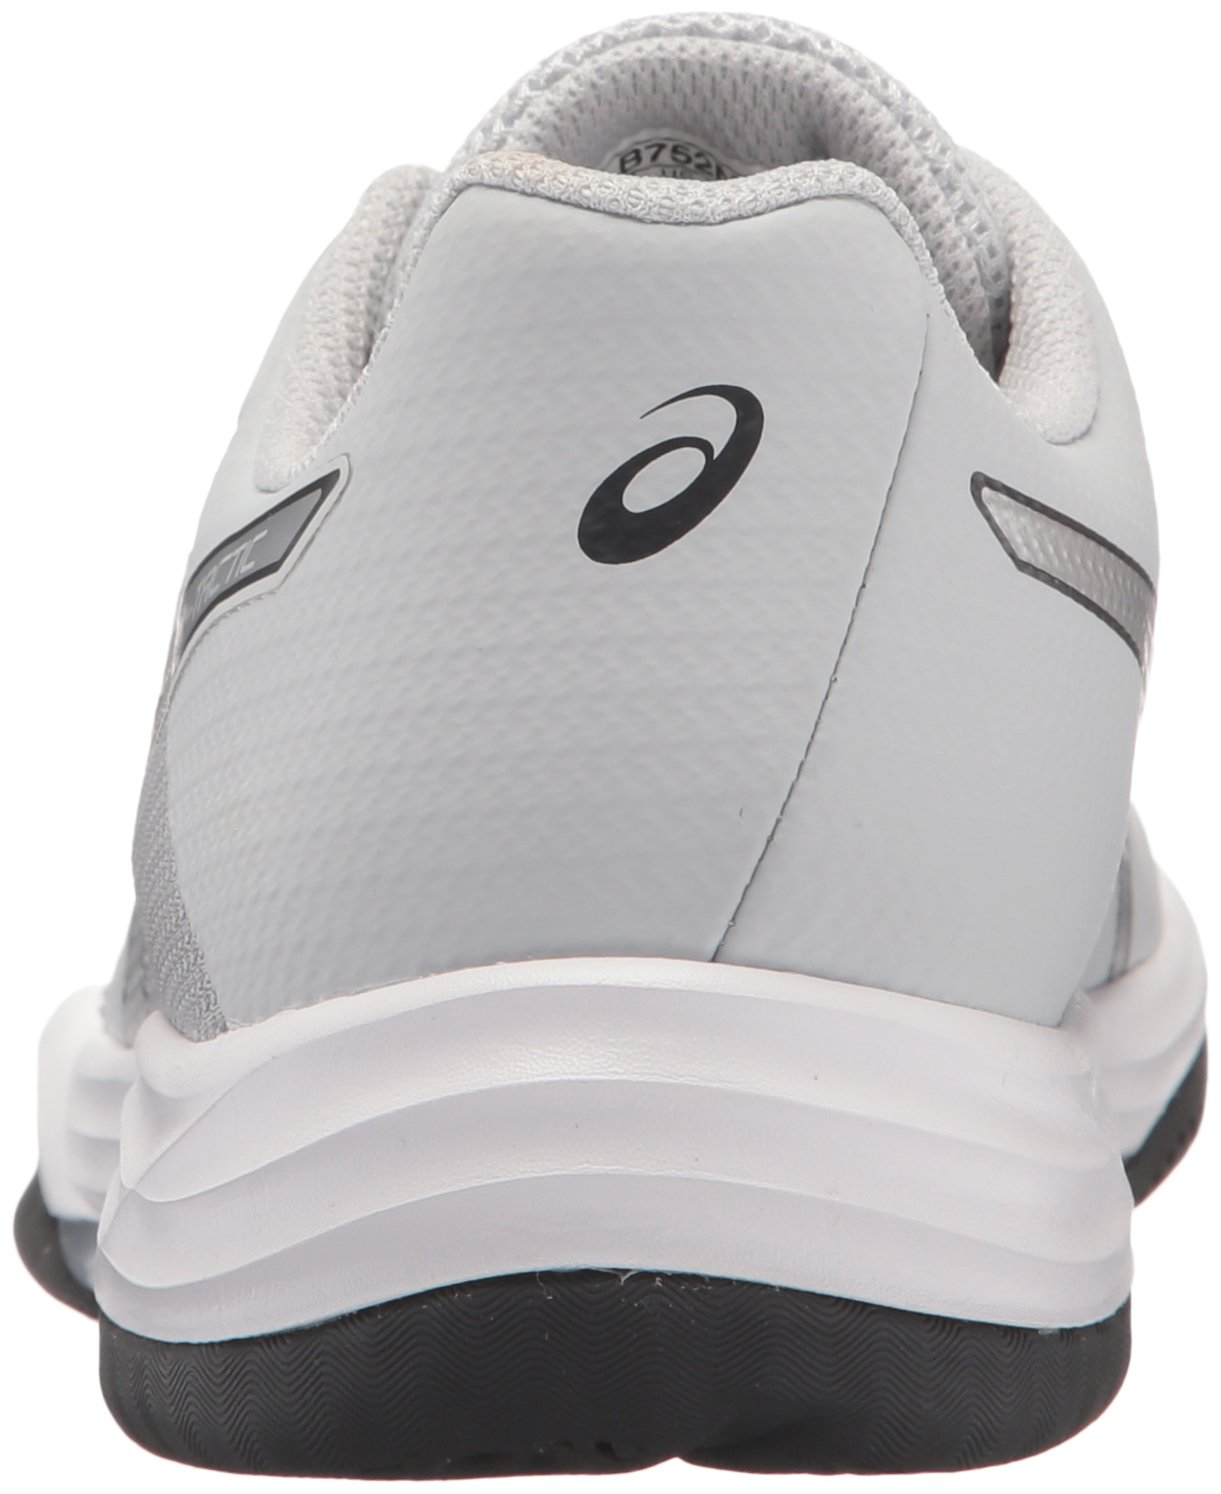 ASICS 13 Women's Gel-Tactic 2 Volleyball Shoe B01N07HLOO 13 ASICS B(M) US|Glacier Grey/Silver/Dark Grey 41cebf